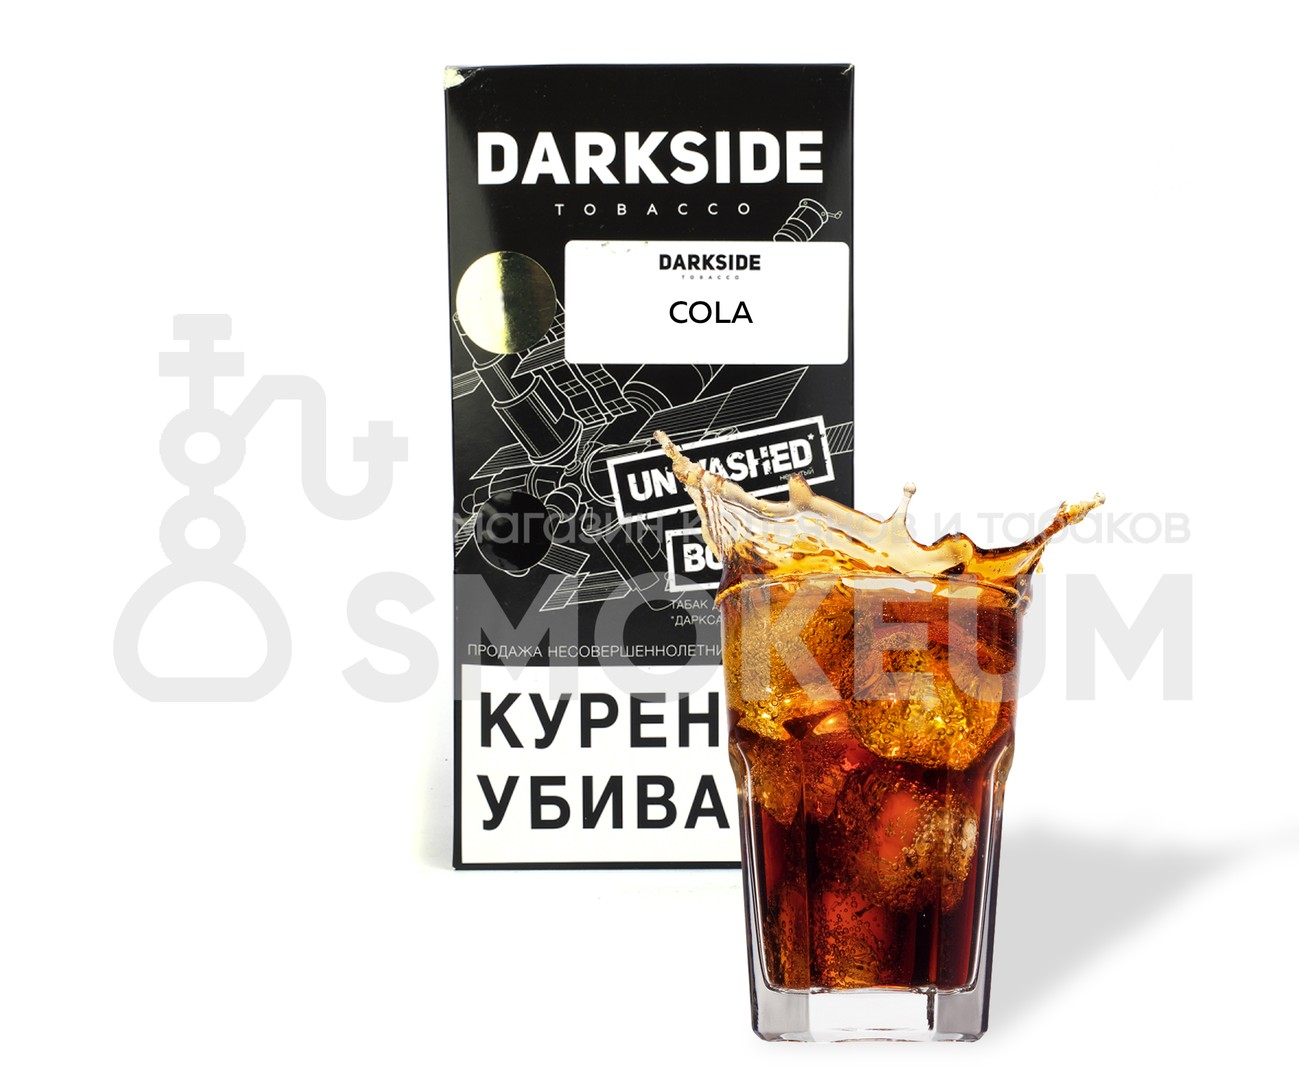 Табак Darkside (Soft) - Cola (Кола) 250 гр